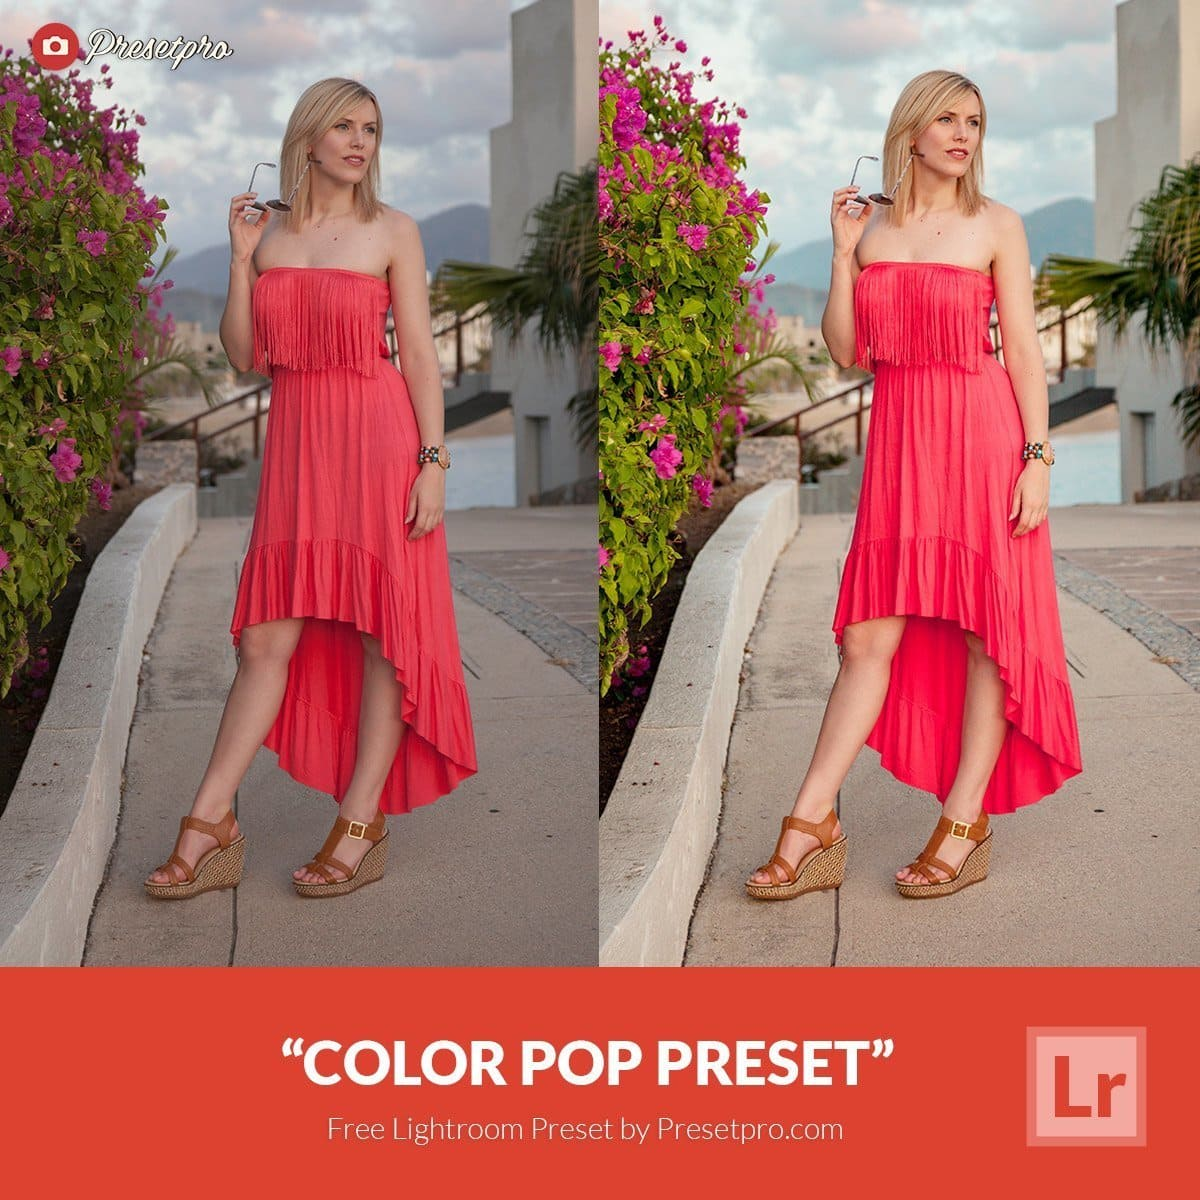 Free-Lightroom-Preset-Color-Pop-Presetpro.com